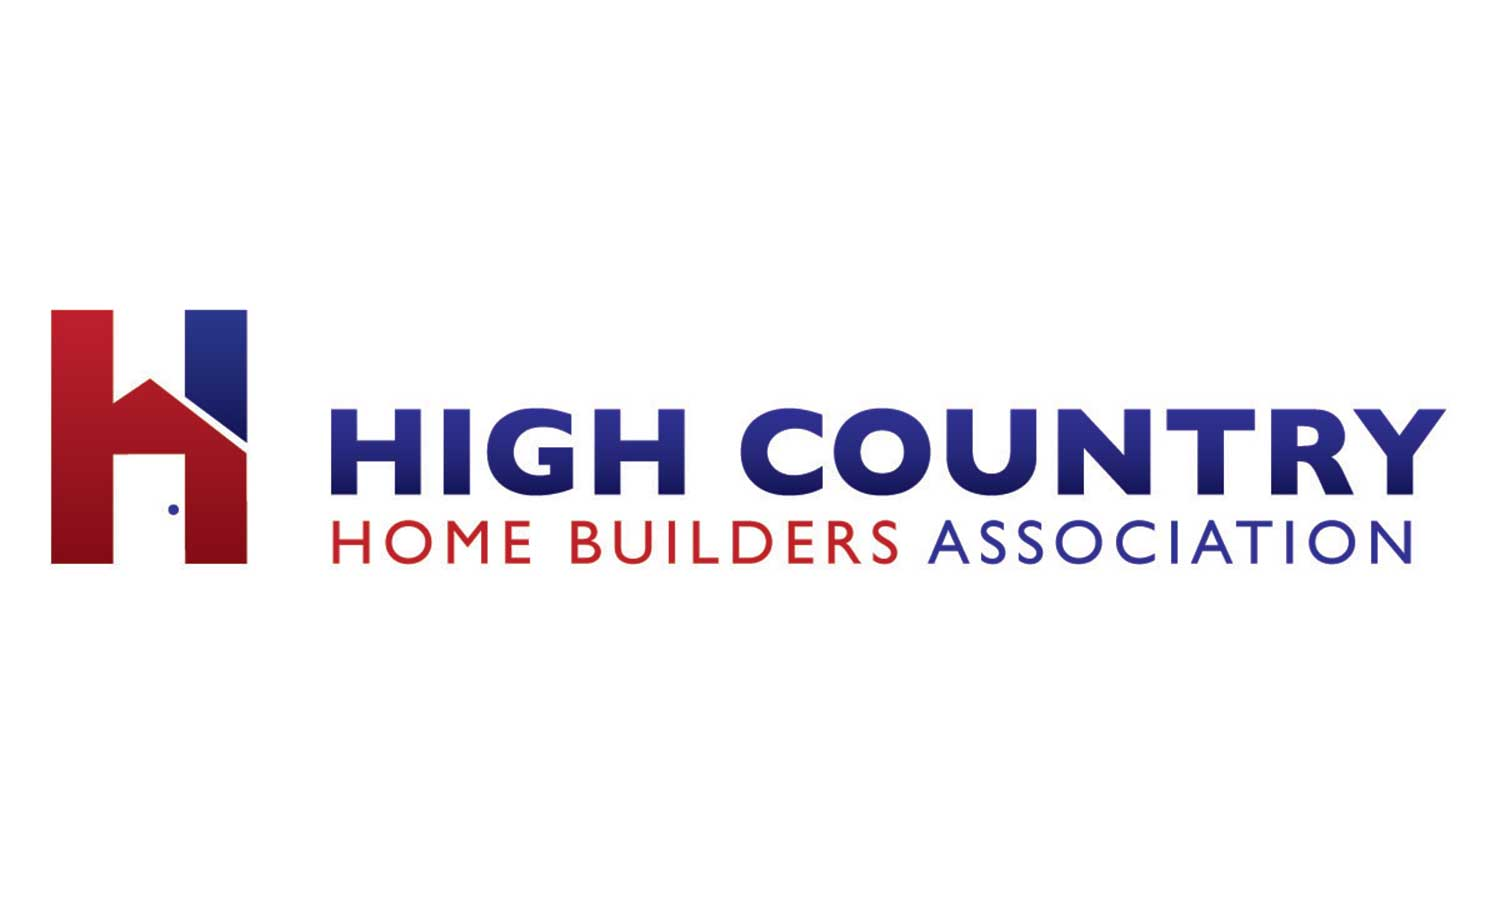 High Country Home Builders Association Logo